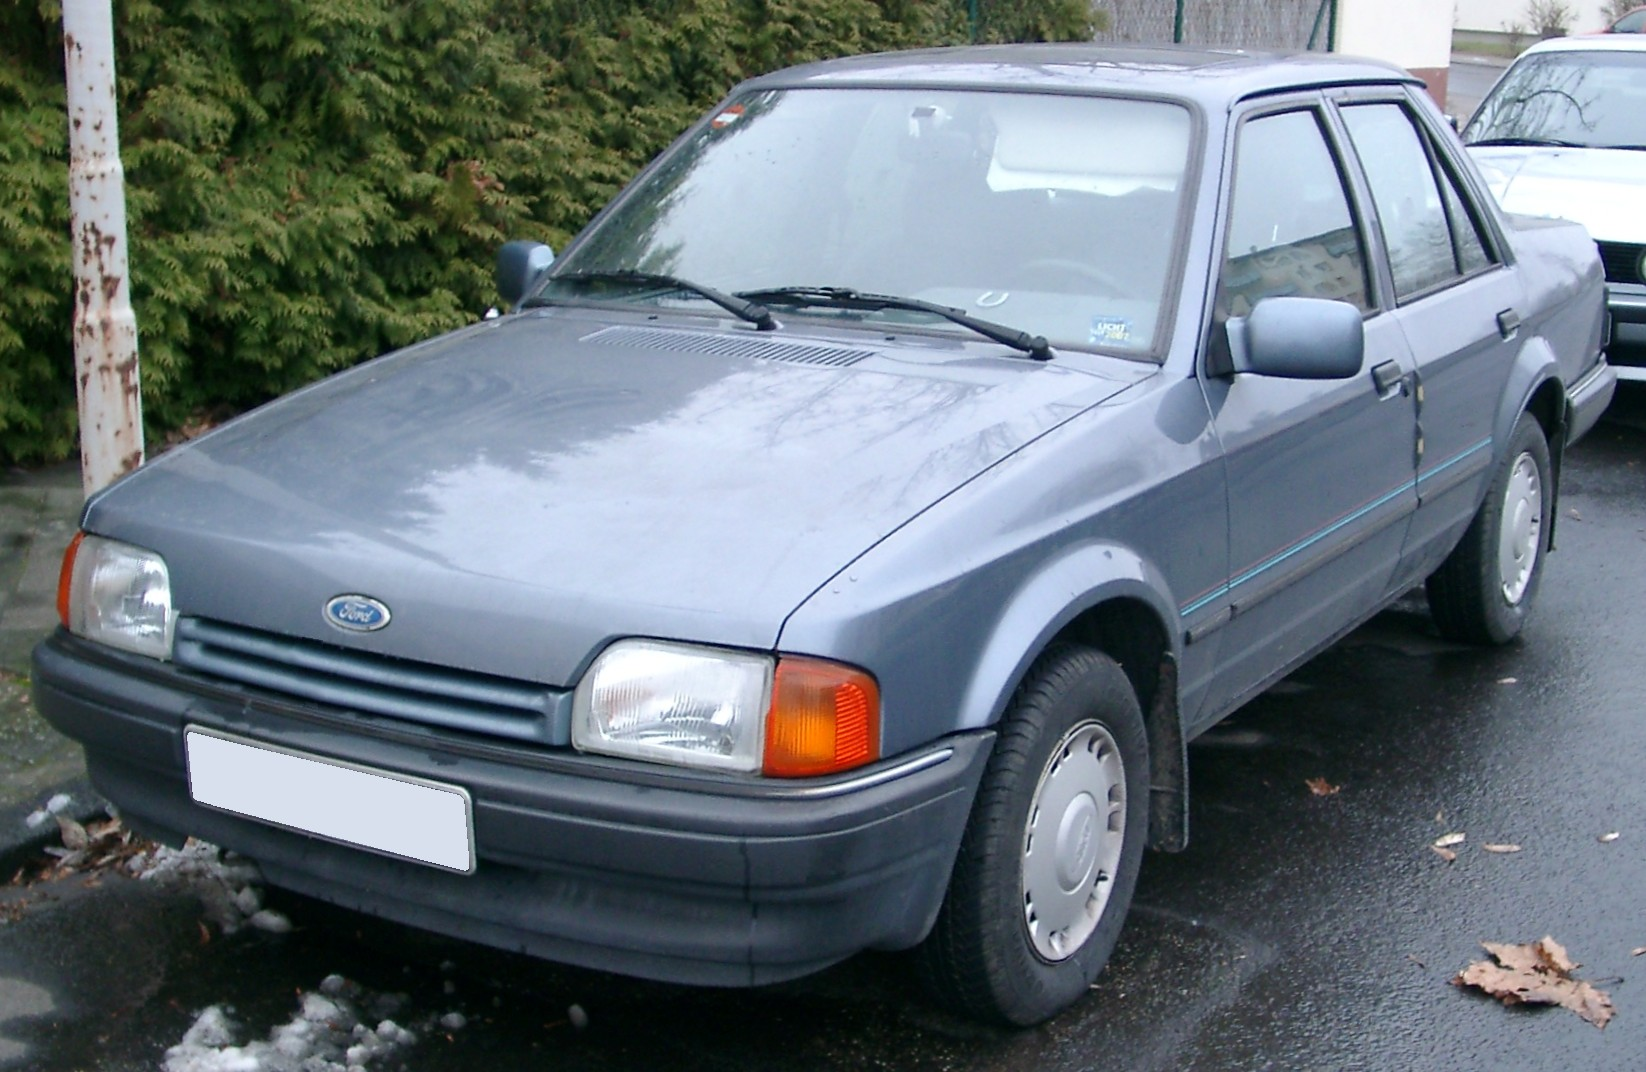 Ford_Orion_front_20071227.jpg